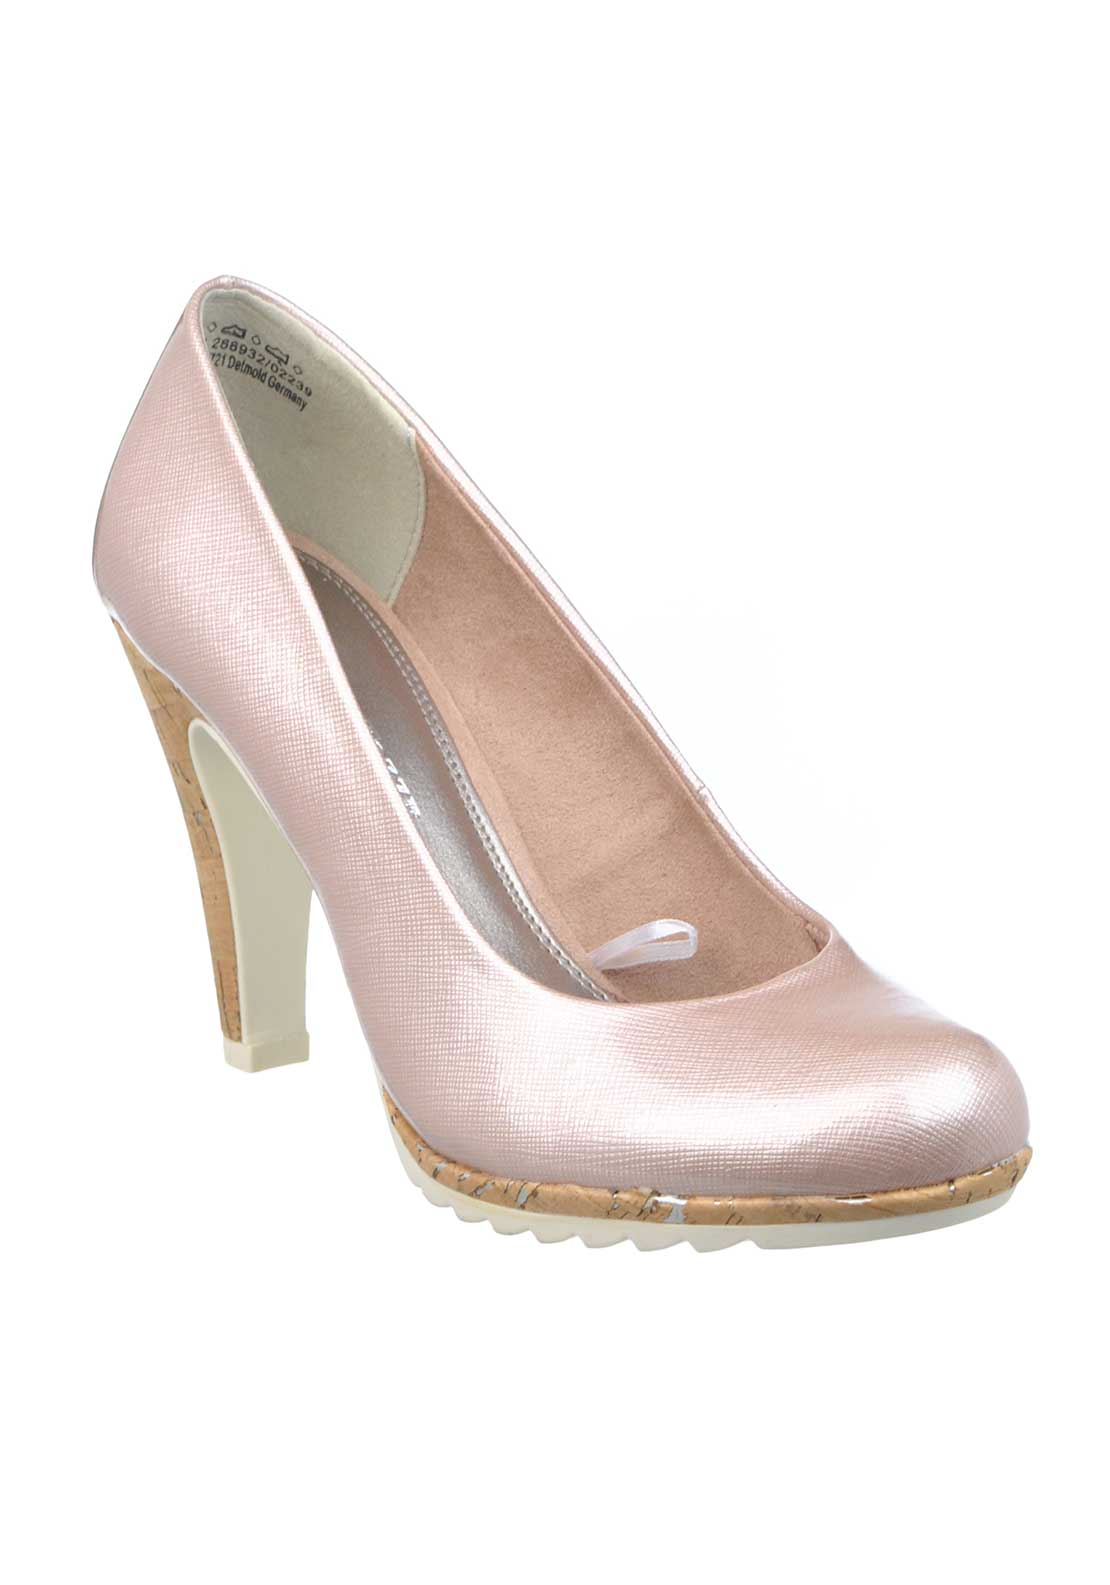 Marco Tozzi Patent Cork Heeled Court Shoes, Rose